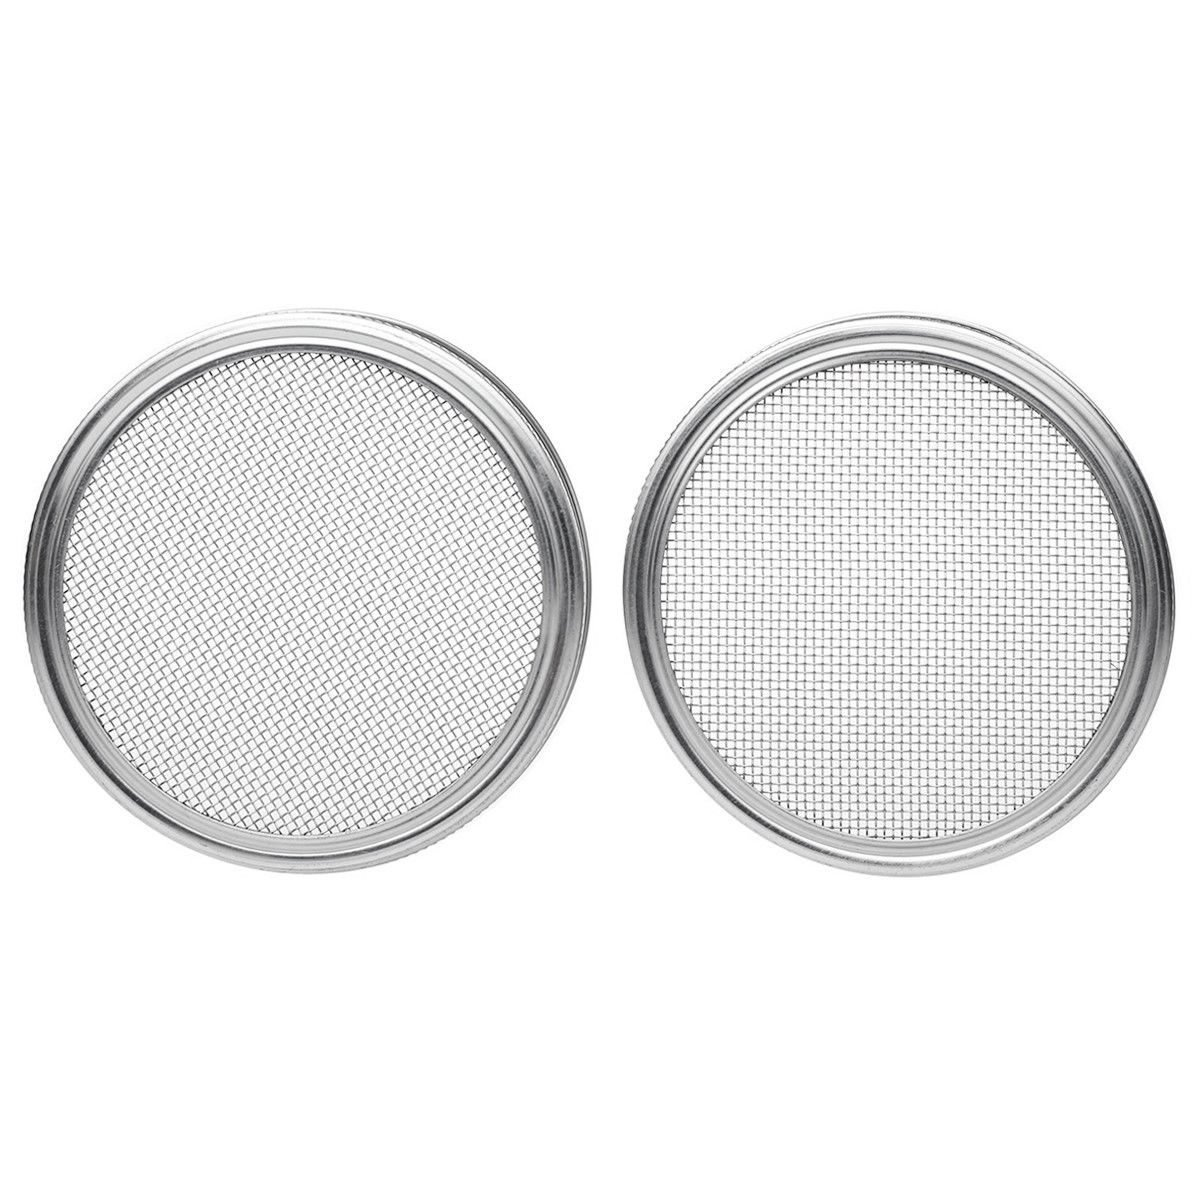 Nrpfell Stainless Steel Sprouting Lids for Wide Mouth Mason Jars - Strainer Lid for Canning Jars and Seed Sprouting Screen - 2pcs